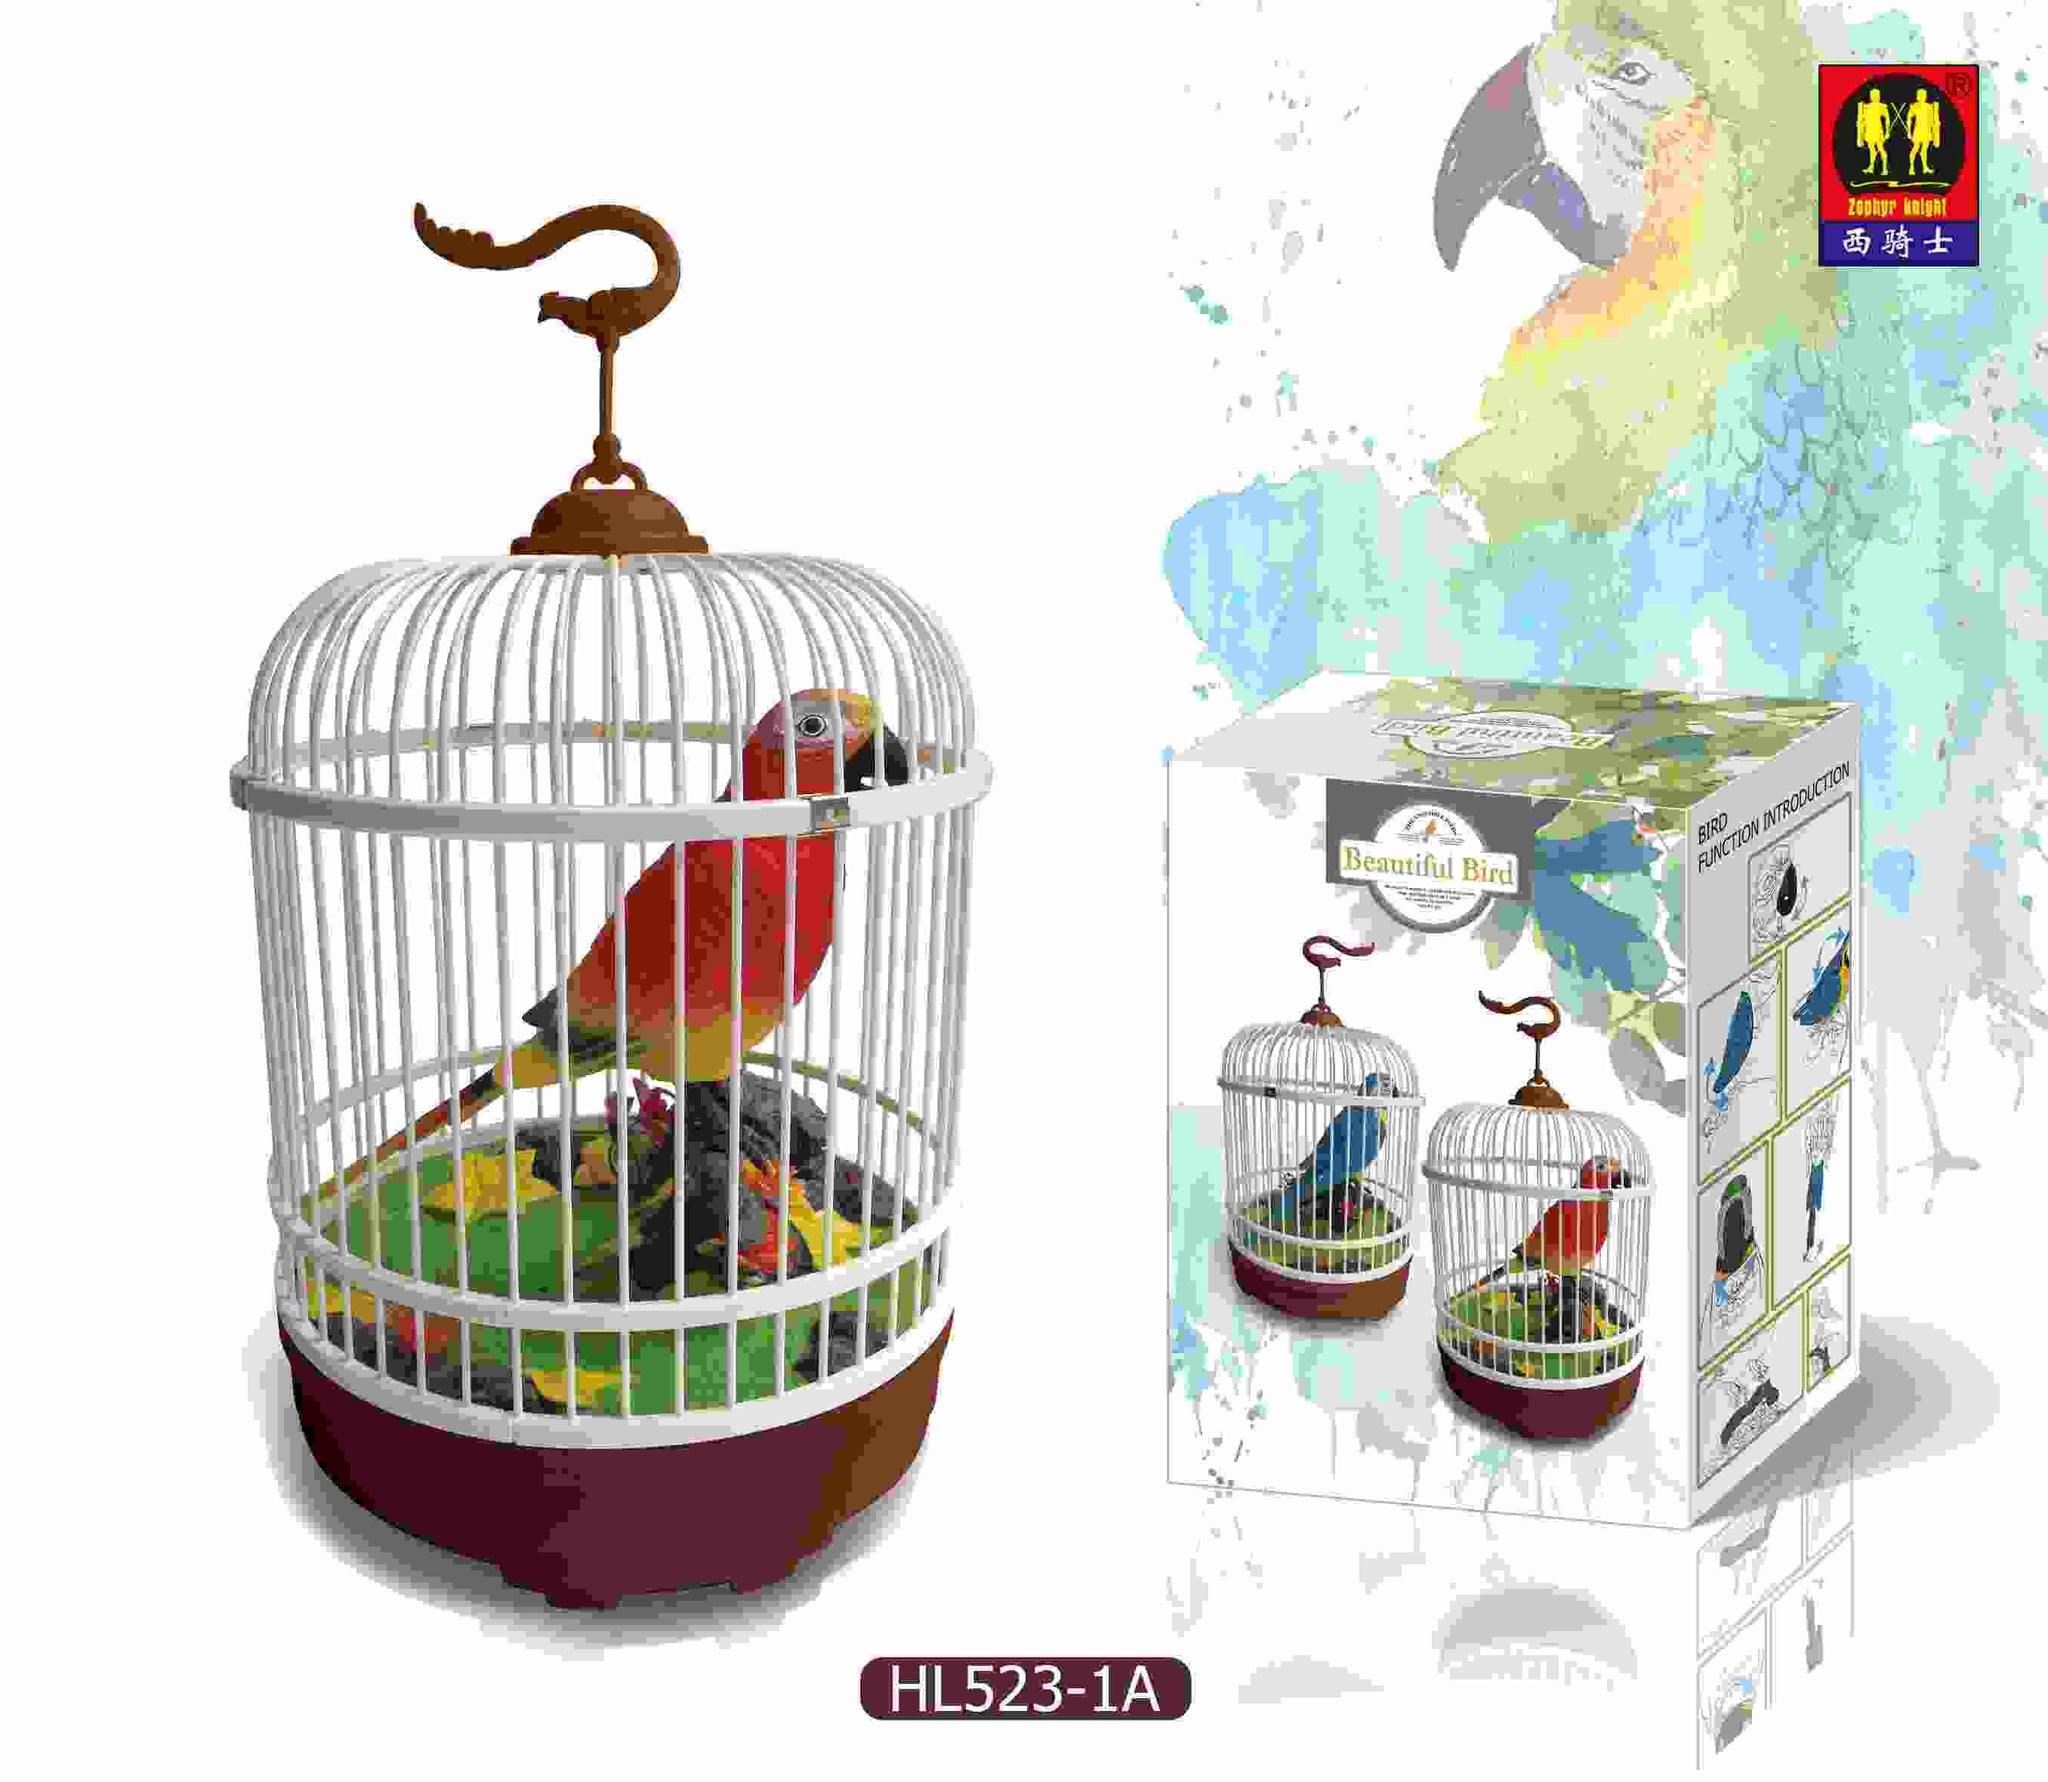 The Ensemble Birds Red Electronic Voice-Activated Parrot Bird in Cage Electrical Simulation Bird Singing Toy Bird